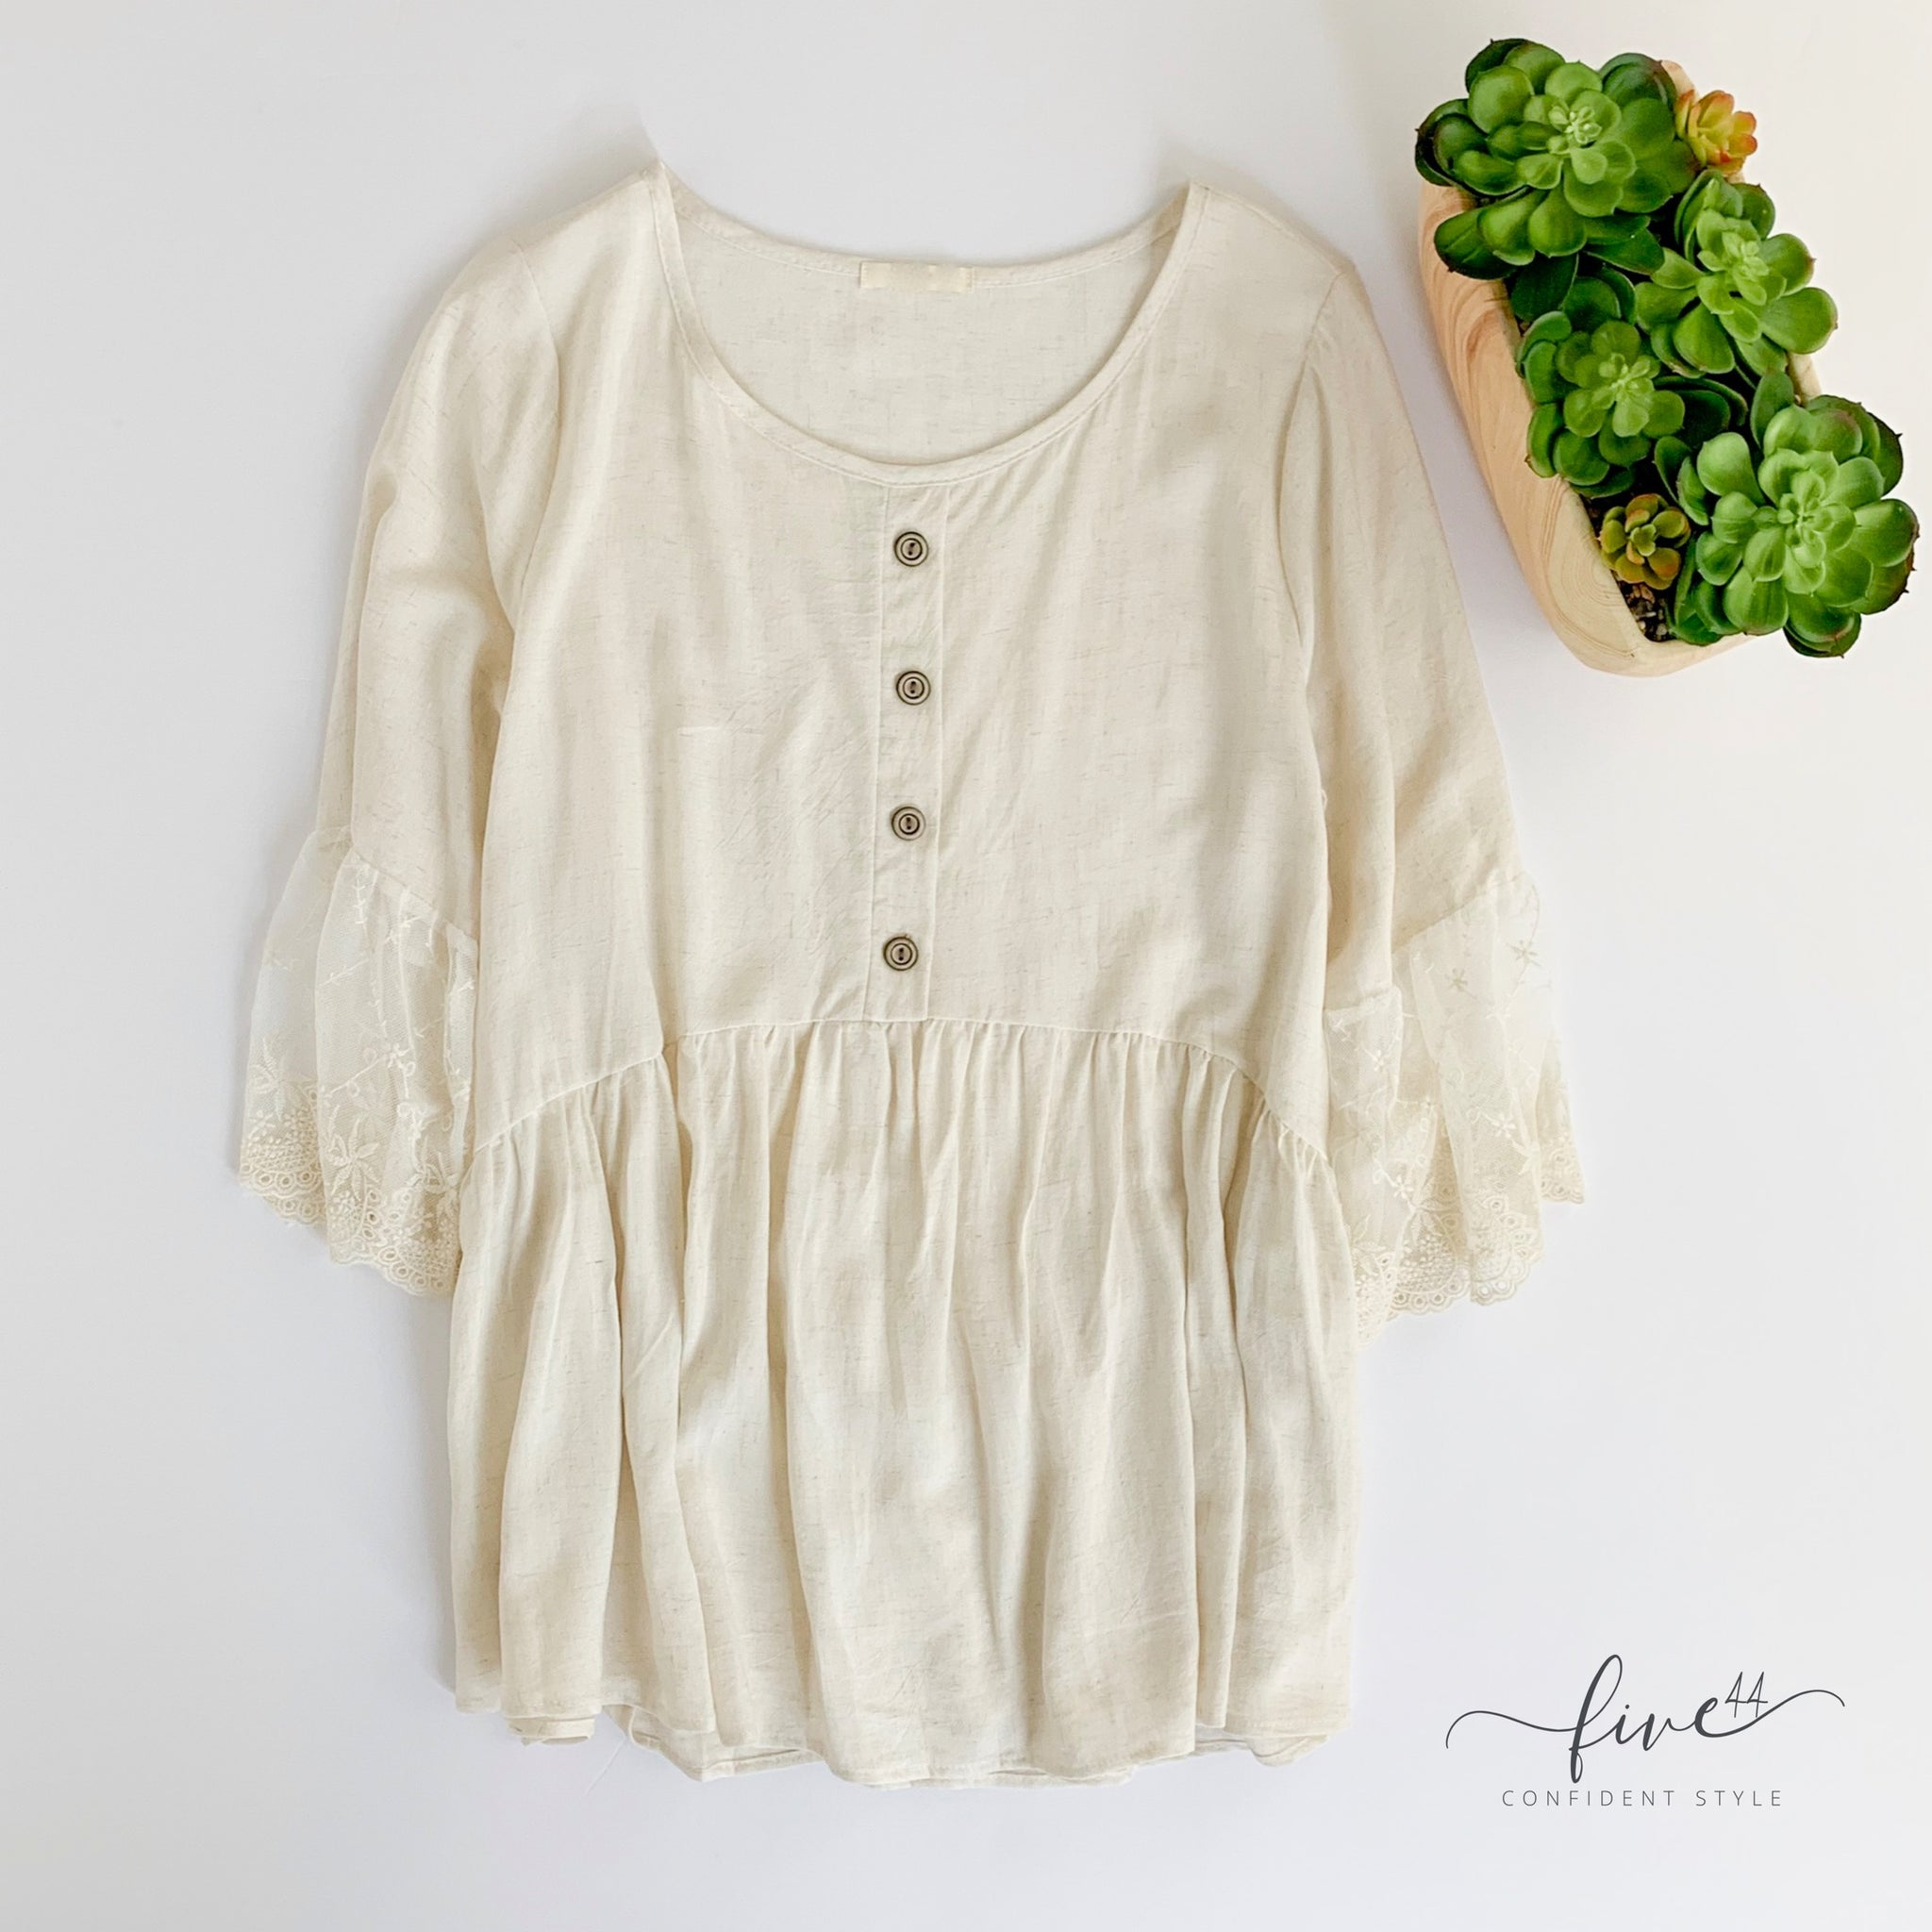 oatmeal lace top, five44 an online women's boutique located just outside of Chicago, Made in the USA